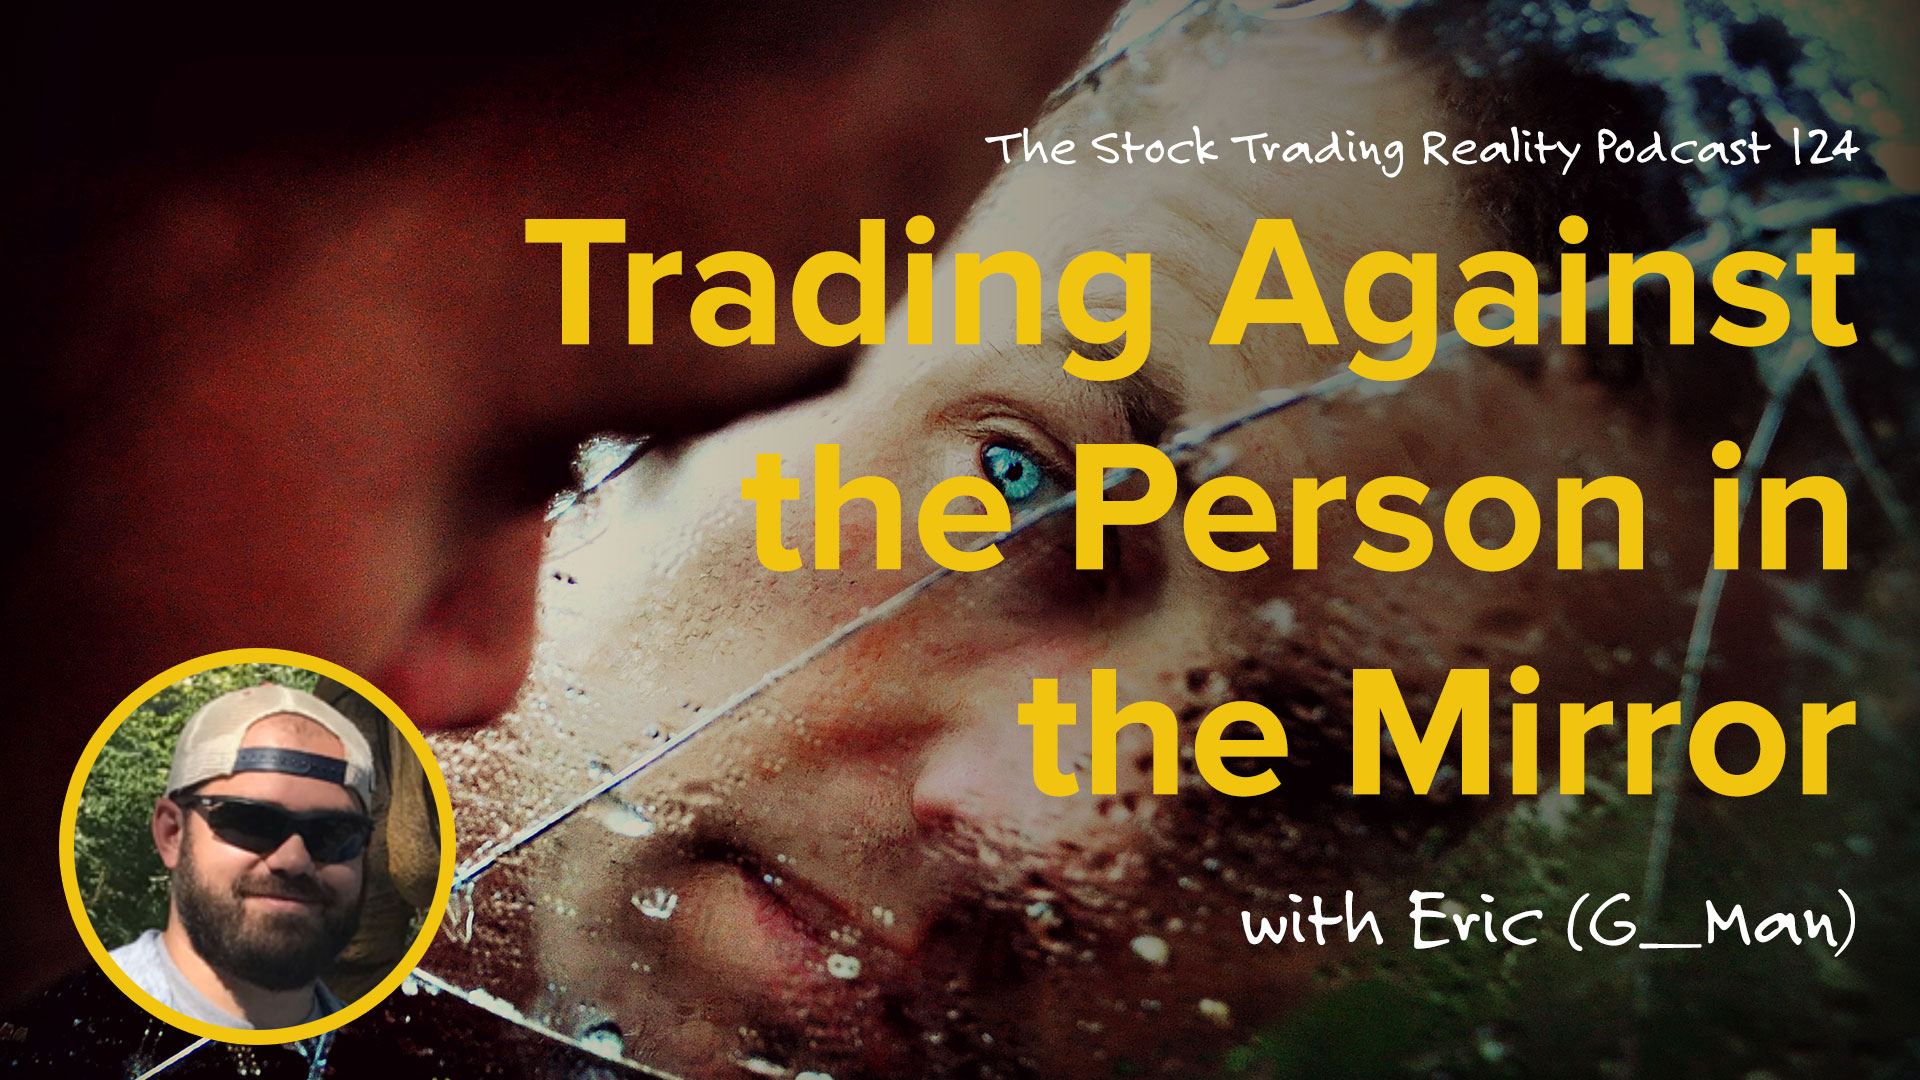 STR 124: Trading Against the Person in the Mirror